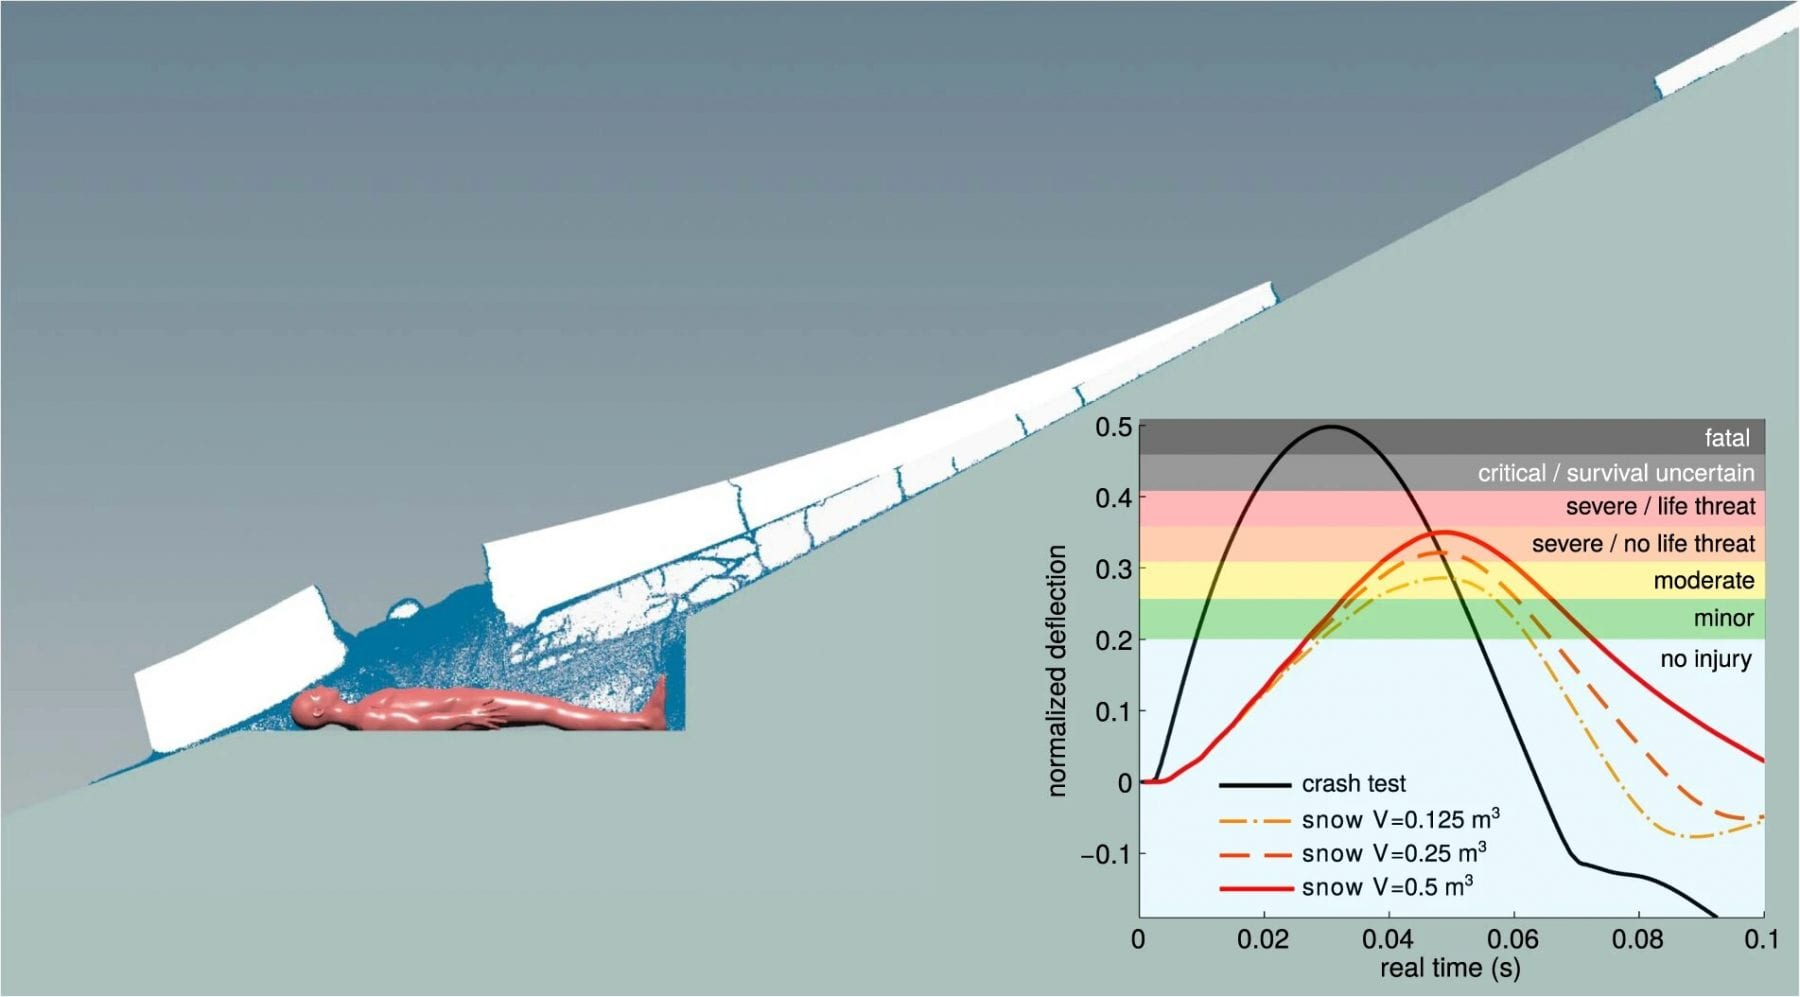 This graph shows the dynamics of a snow slab avalance together with the damage it could cause on a human body depending on the amount of snow. Credit: Gaume/Puzrin